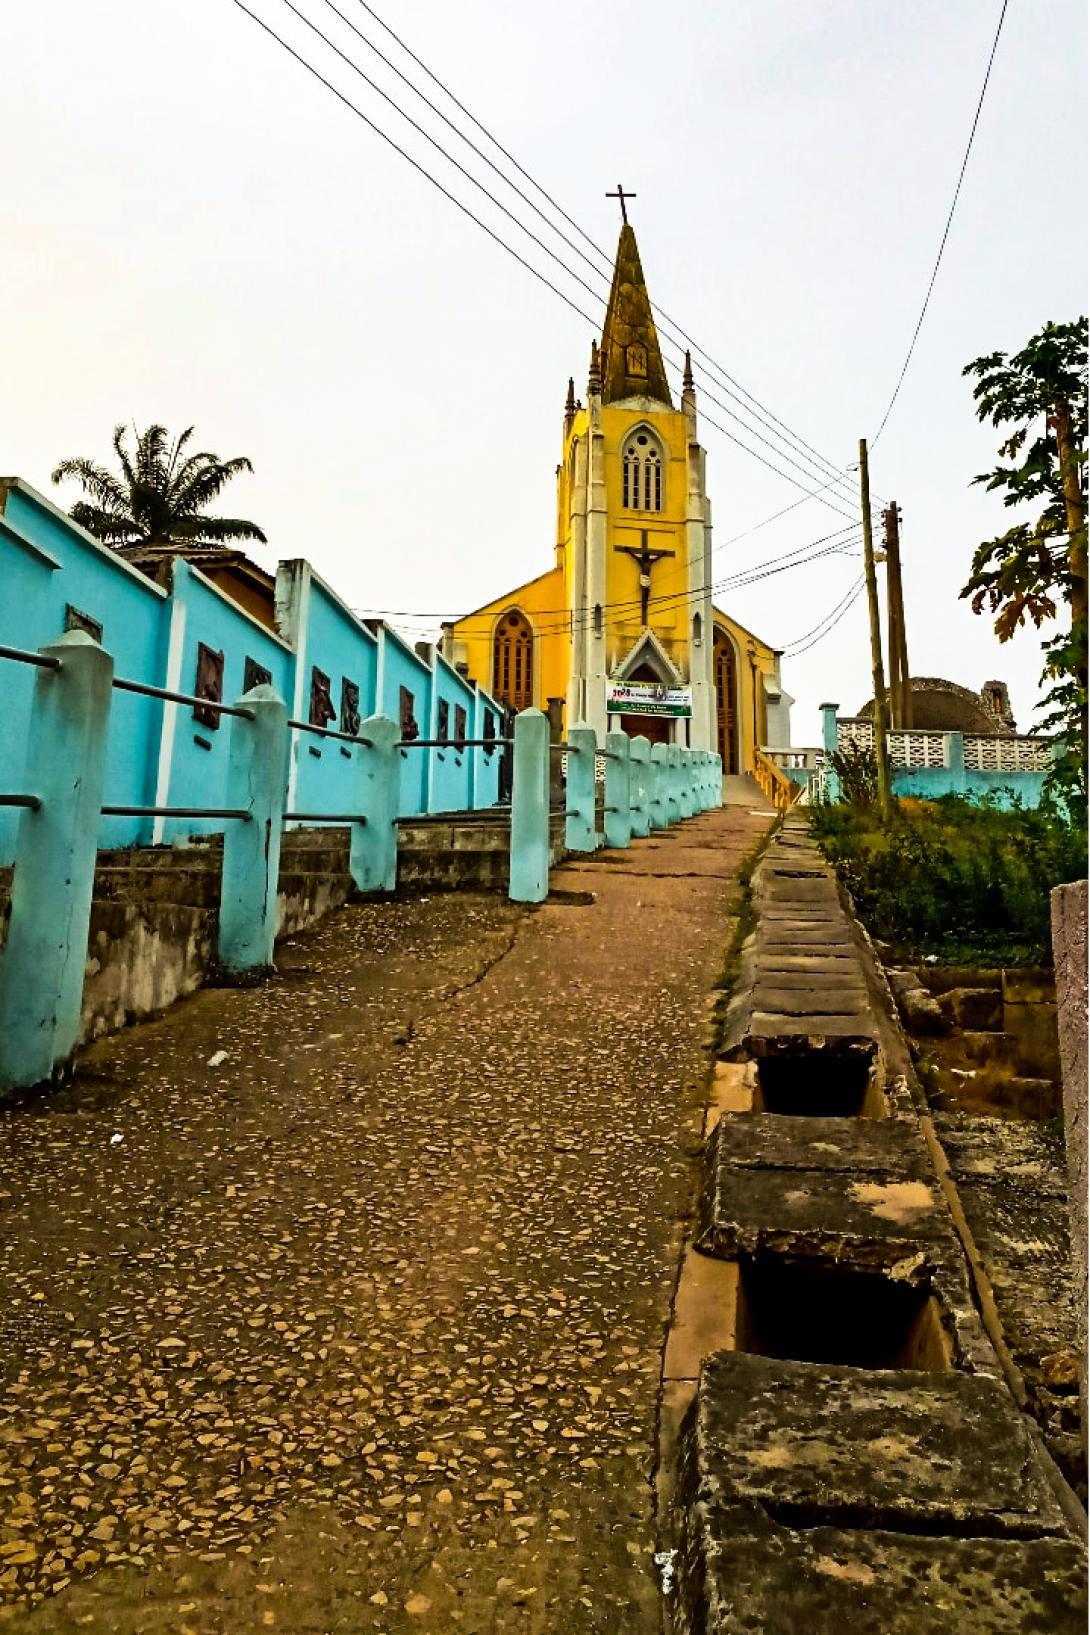 Church on a hill in Cape Coast, Ghana